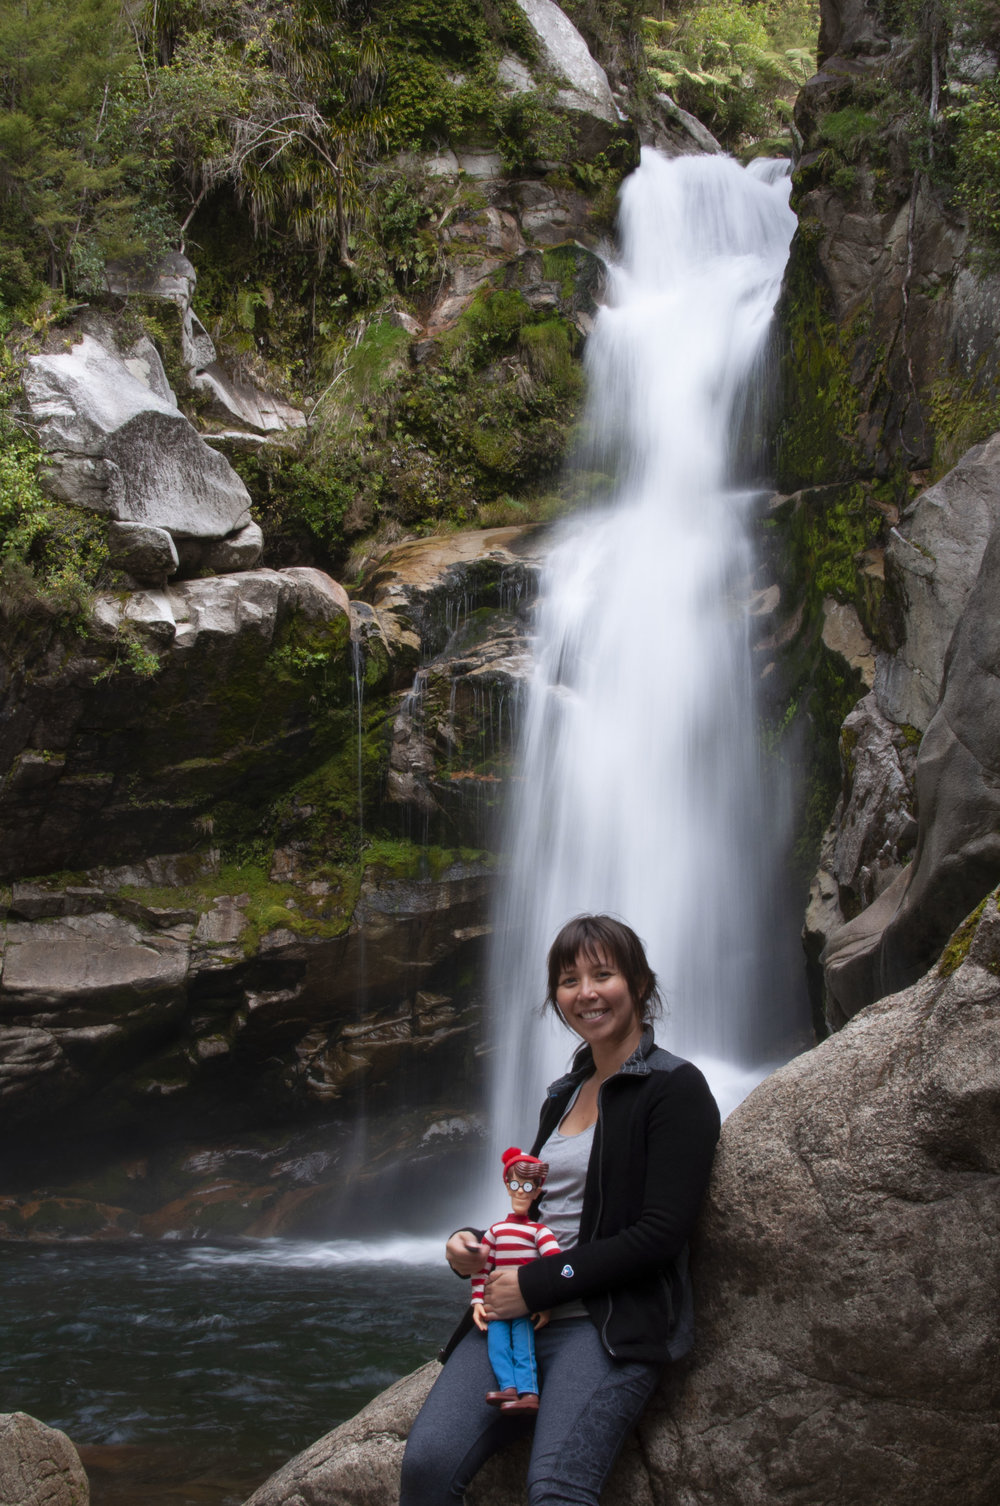 Yep, that's right. I hiked with a doll to take a photo in front of a waterfall! It's not weird or anything.  Photo Credit - ©robbiemyers